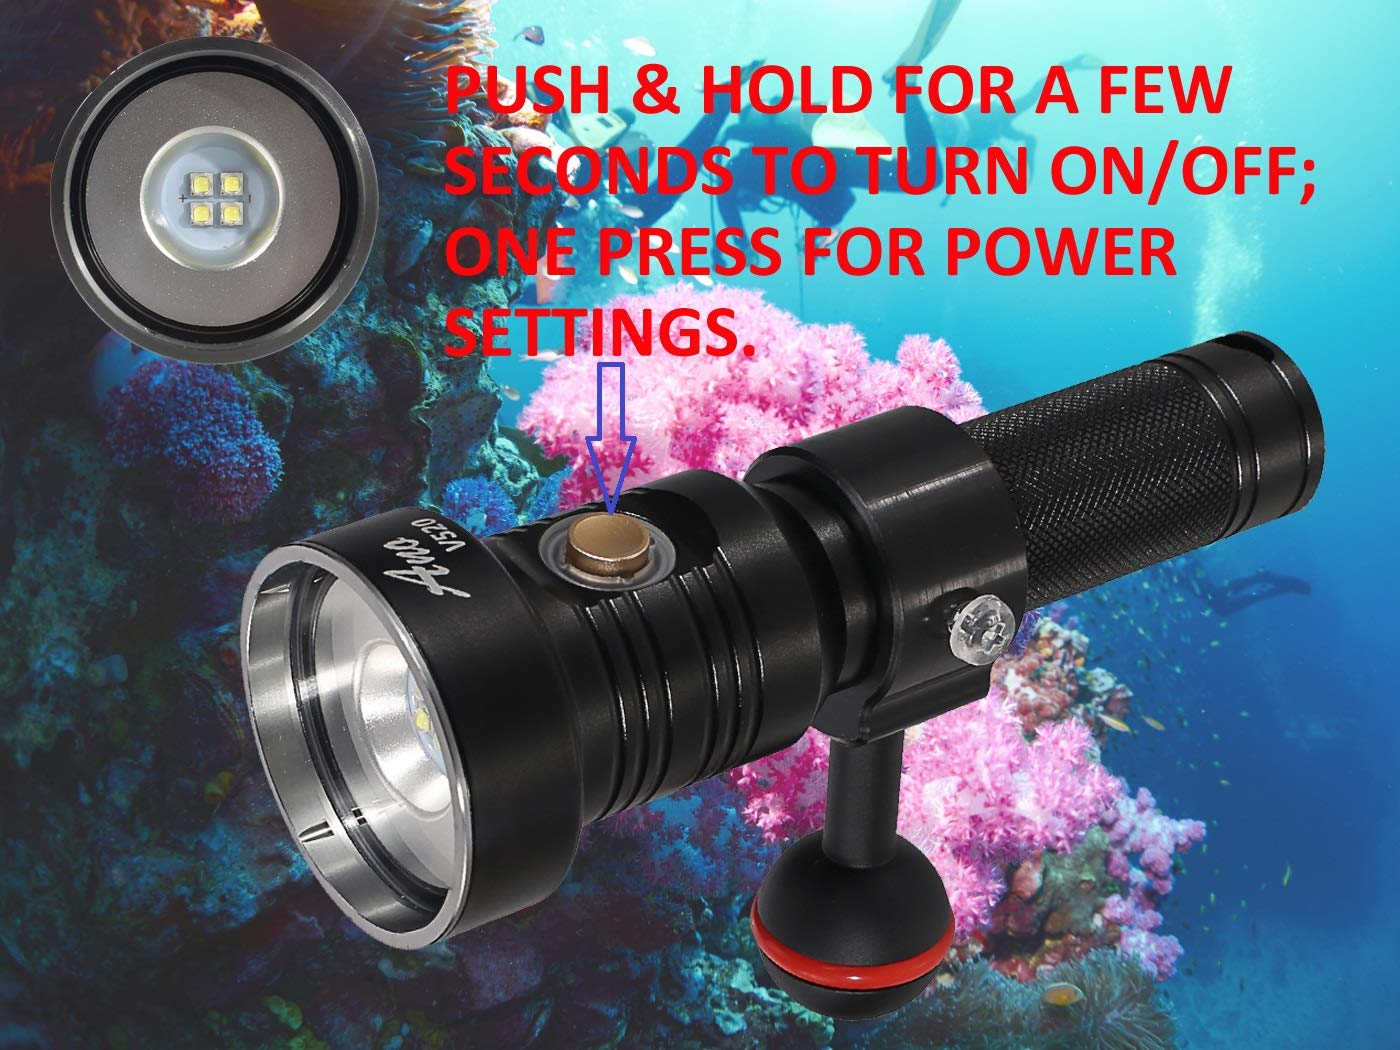 Ano V520 Dive Video Light 2000 Lumen with 2 Power Settings Included ICR18650 Battery and USB Charger Scuba Underwater Photography Light Waterproof 650ft by Ano (Image #1)